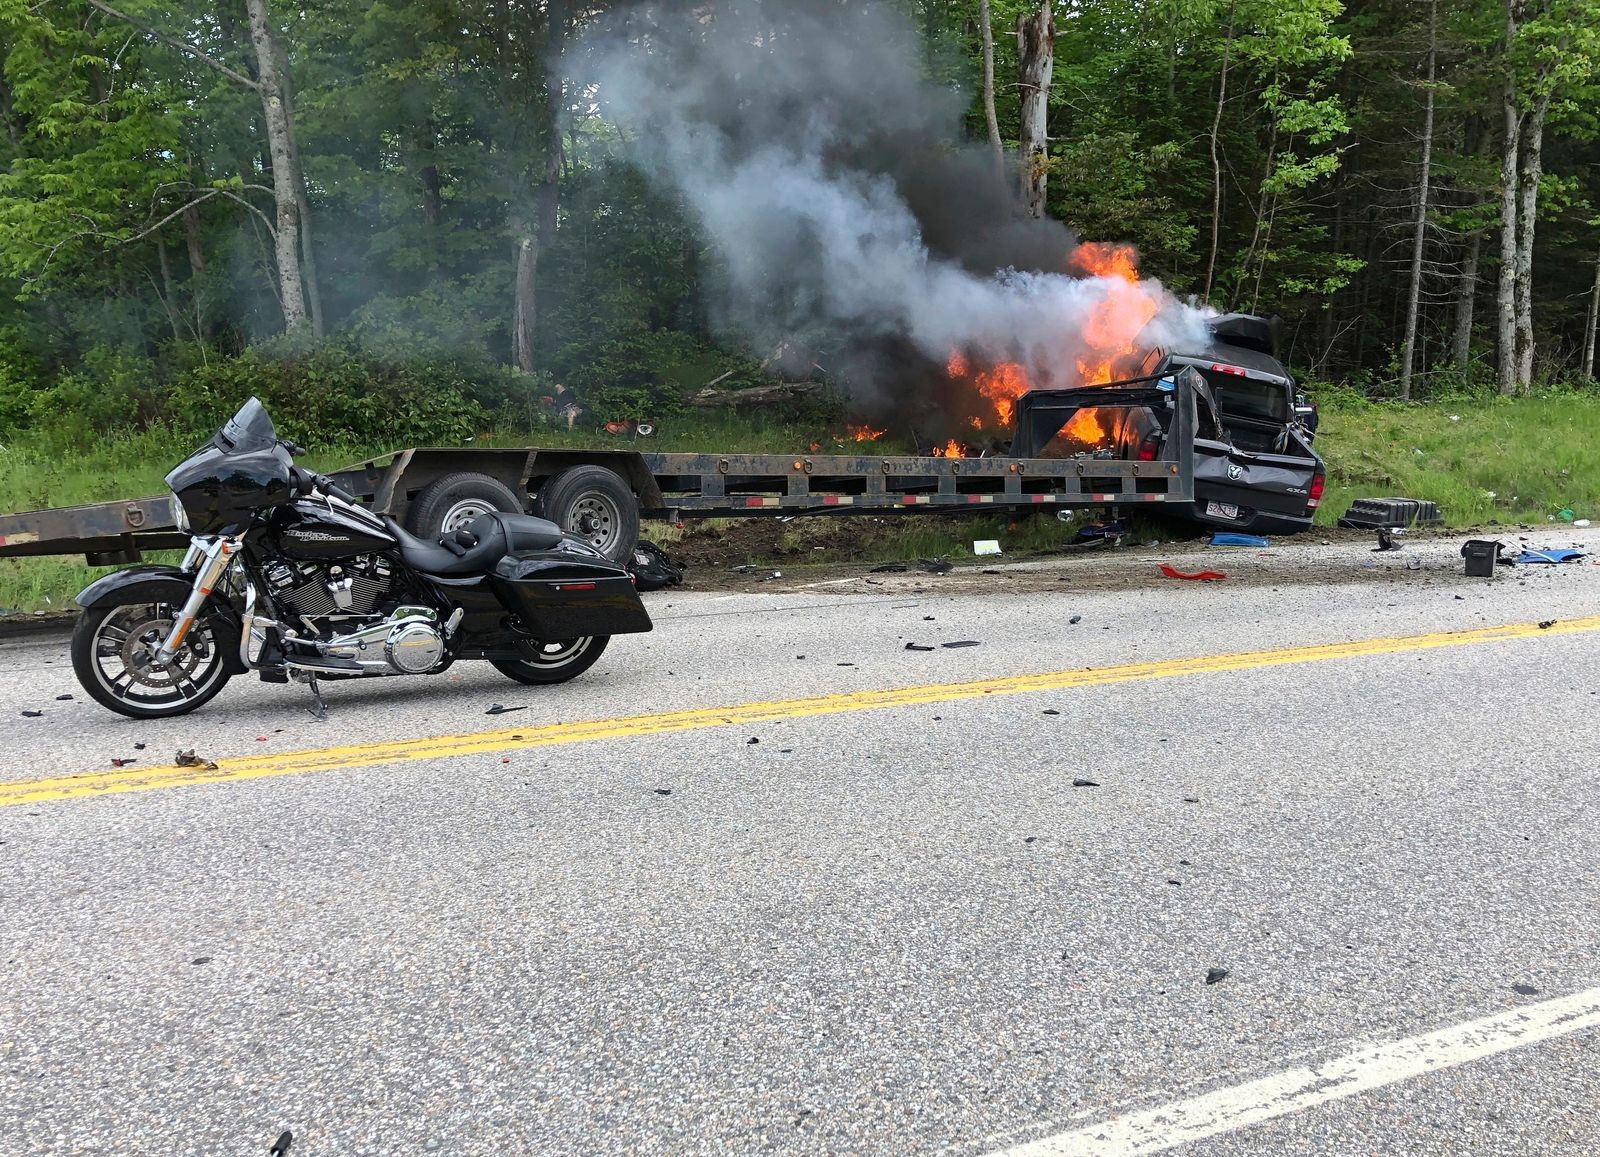 This photo provided by Miranda Thompson shows the scene where several motorcycles and a pickup truck collided on a rural, two-lane highway Friday, June 21, 2019 in Randolph, N.H.  New Hampshire State Police said a 2016 Dodge 2500 pickup truck collided with the riders on U.S. 2 Friday evening. The cause of the deadly collision is not yet known. The pickup truck was on fire when emergency crews arrived.  (Miranda Thompson via AP)